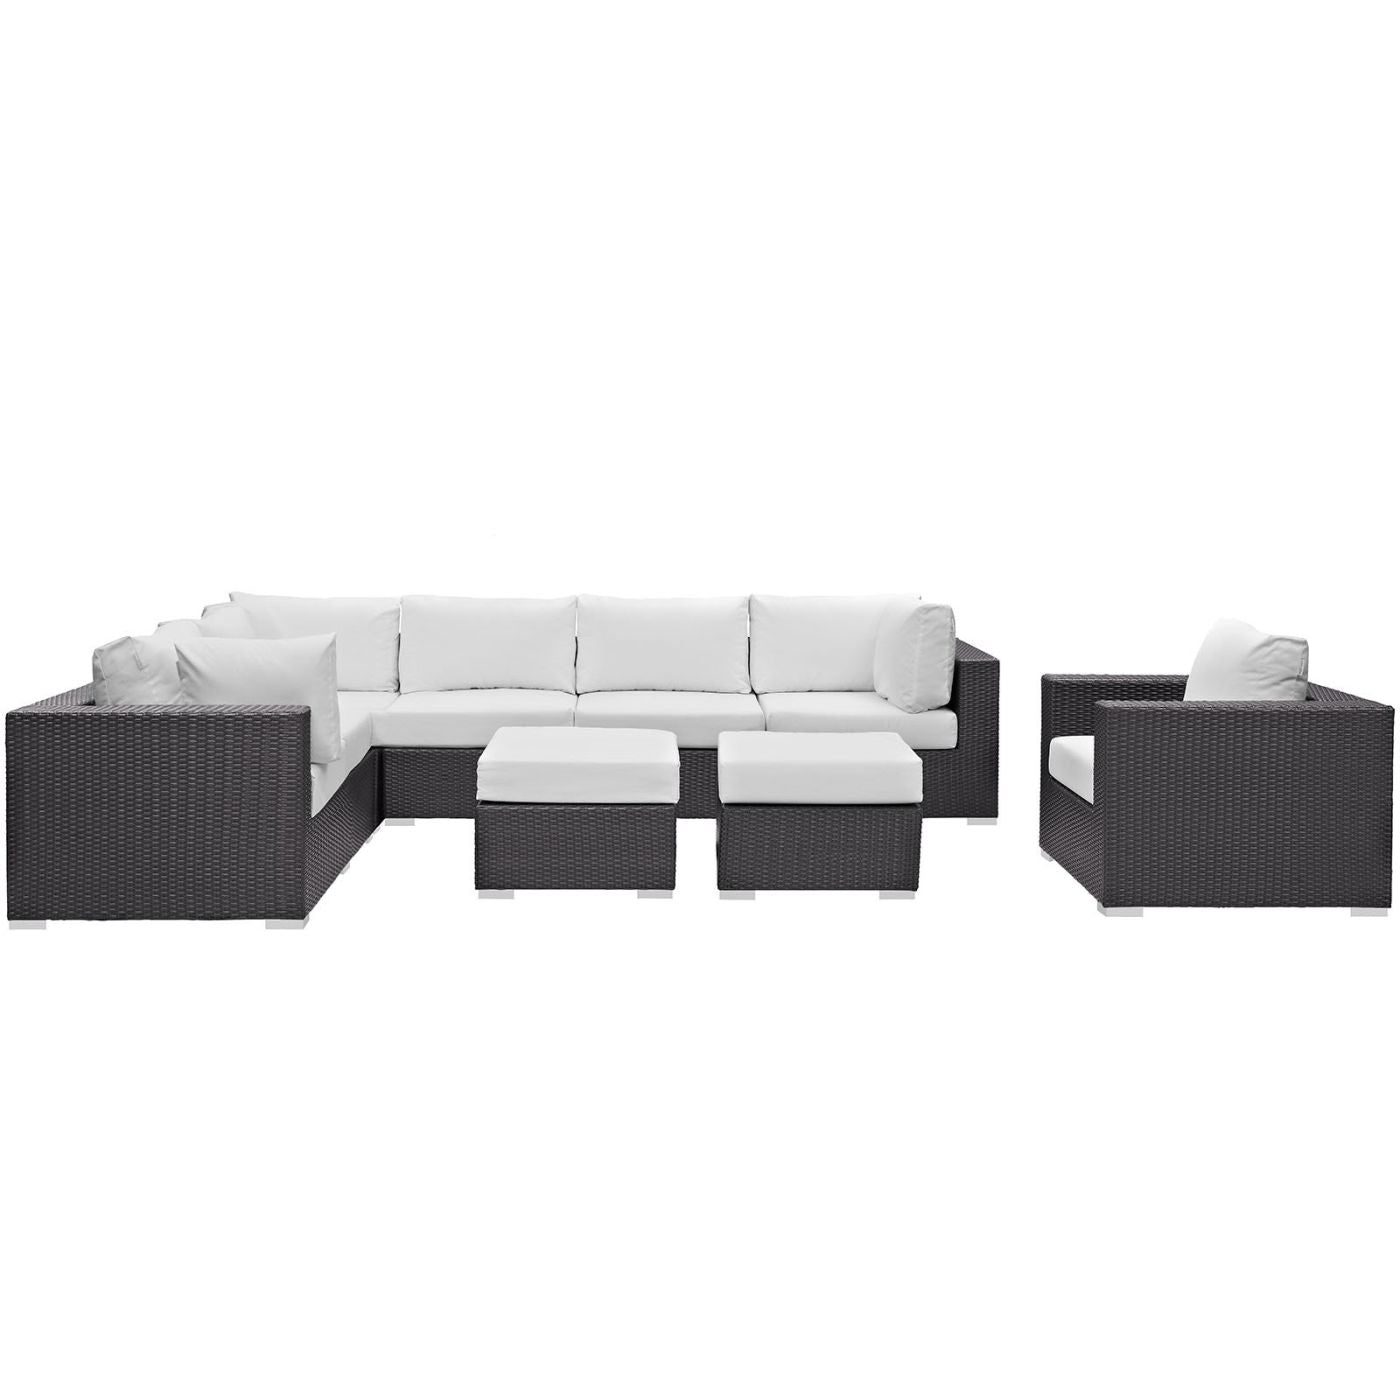 sectional furniture boutique pe convenience rattan patio set outdoor wicker of picture pieces